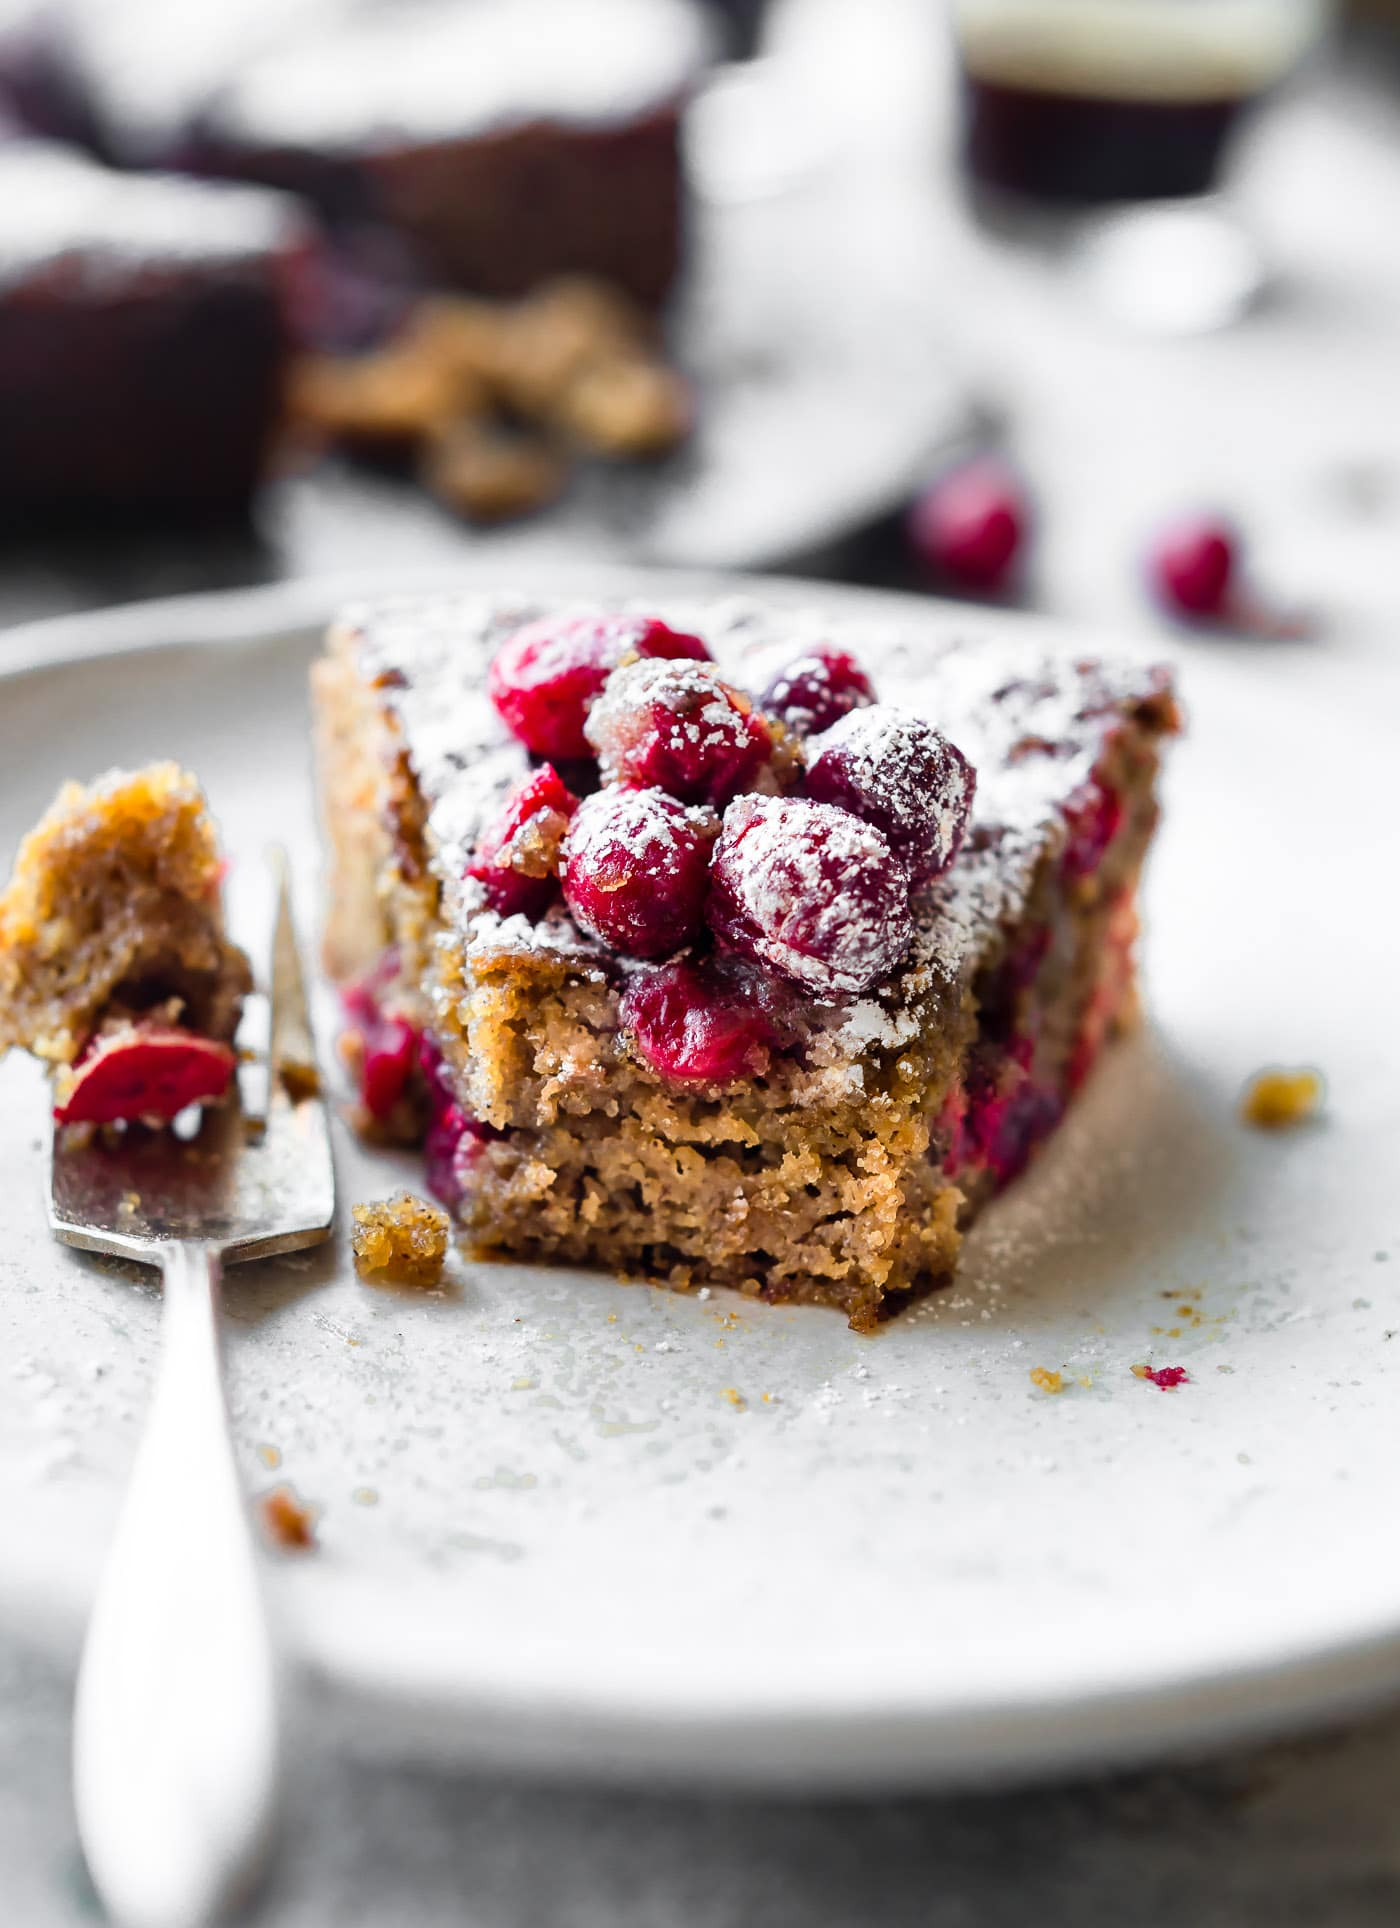 Cranberry Sour Cream Almond Cake is a flavorful grain-free almond cake that tastes like coffee cake, but healthier. Cranberries, almond flour, sour cream, eggs, and maple glaze make this the perfect for brunch cake or dessert.